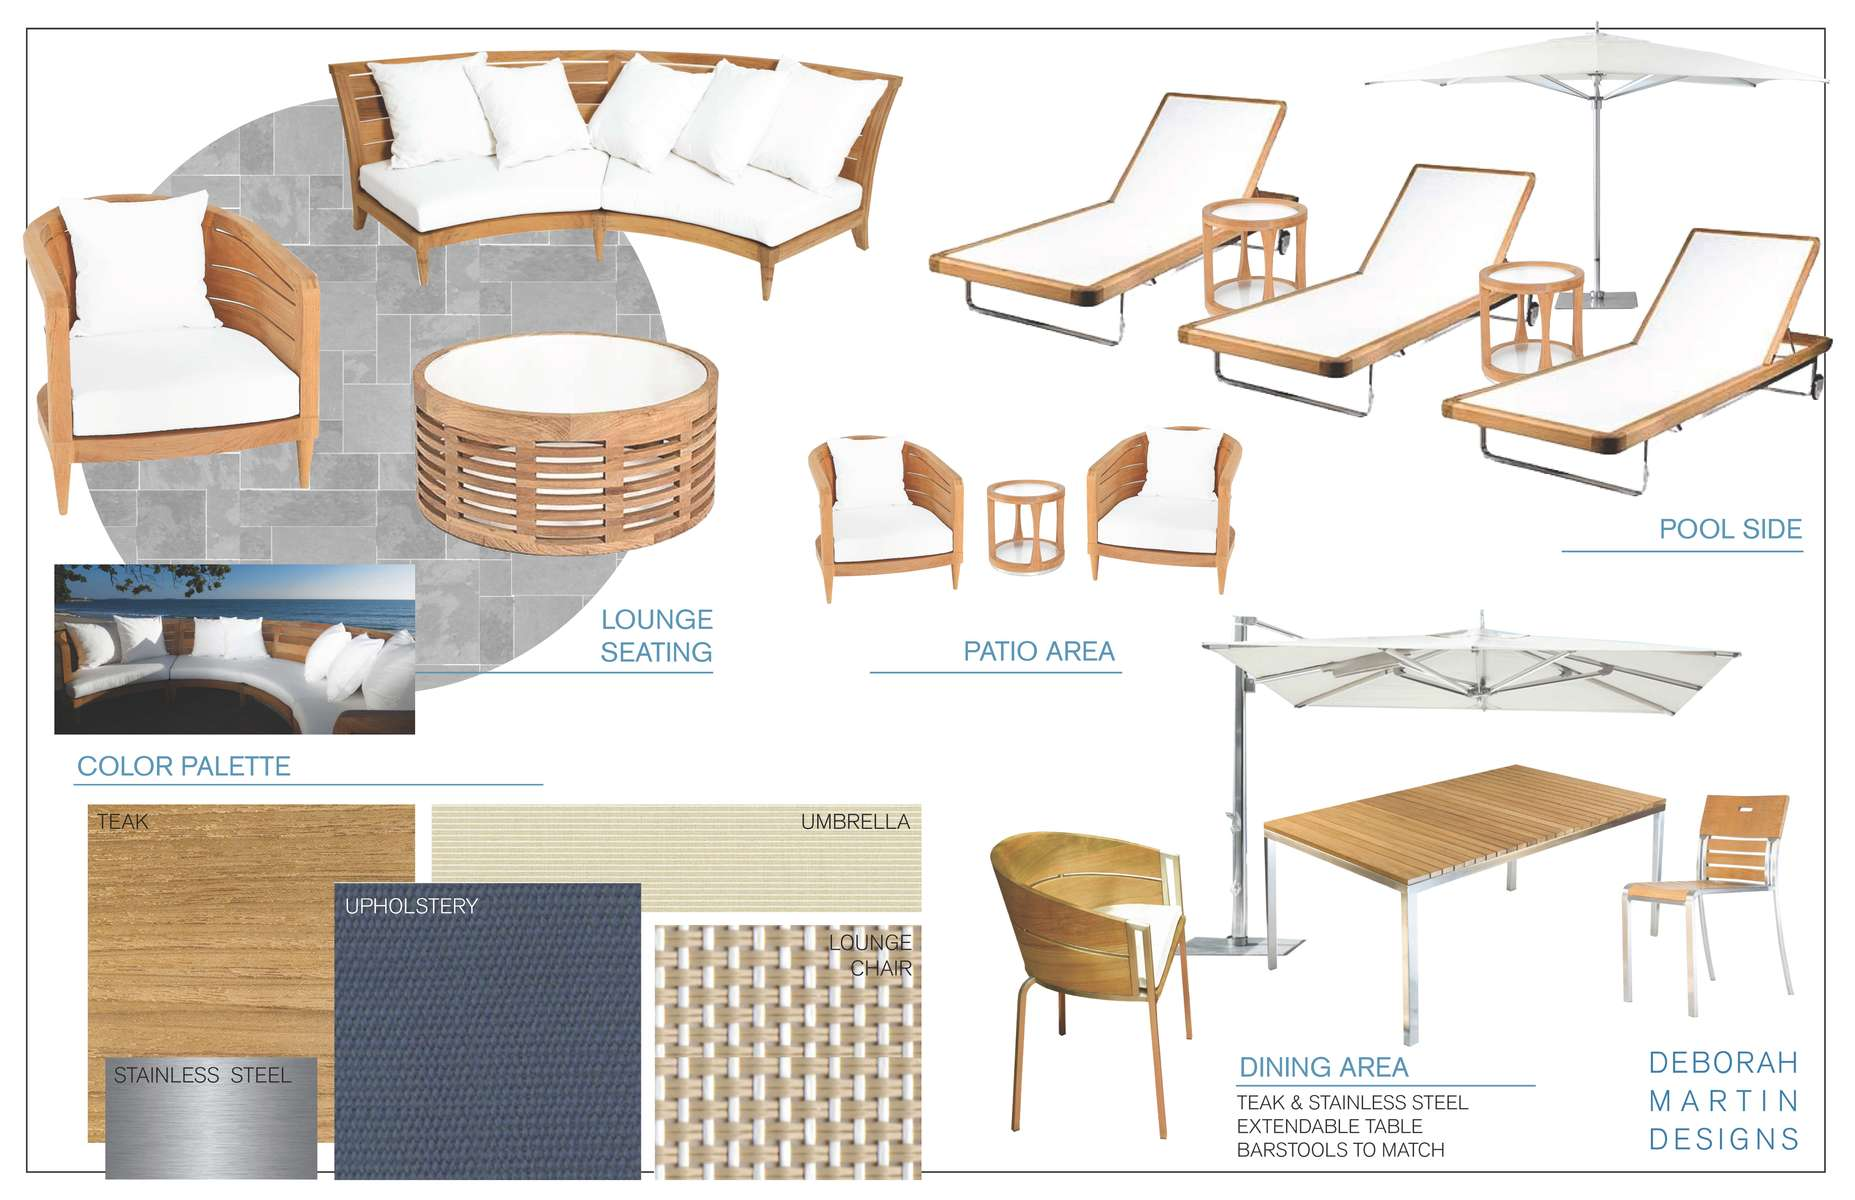 Outdoor Furniture Design Presentation with Transitional Teak